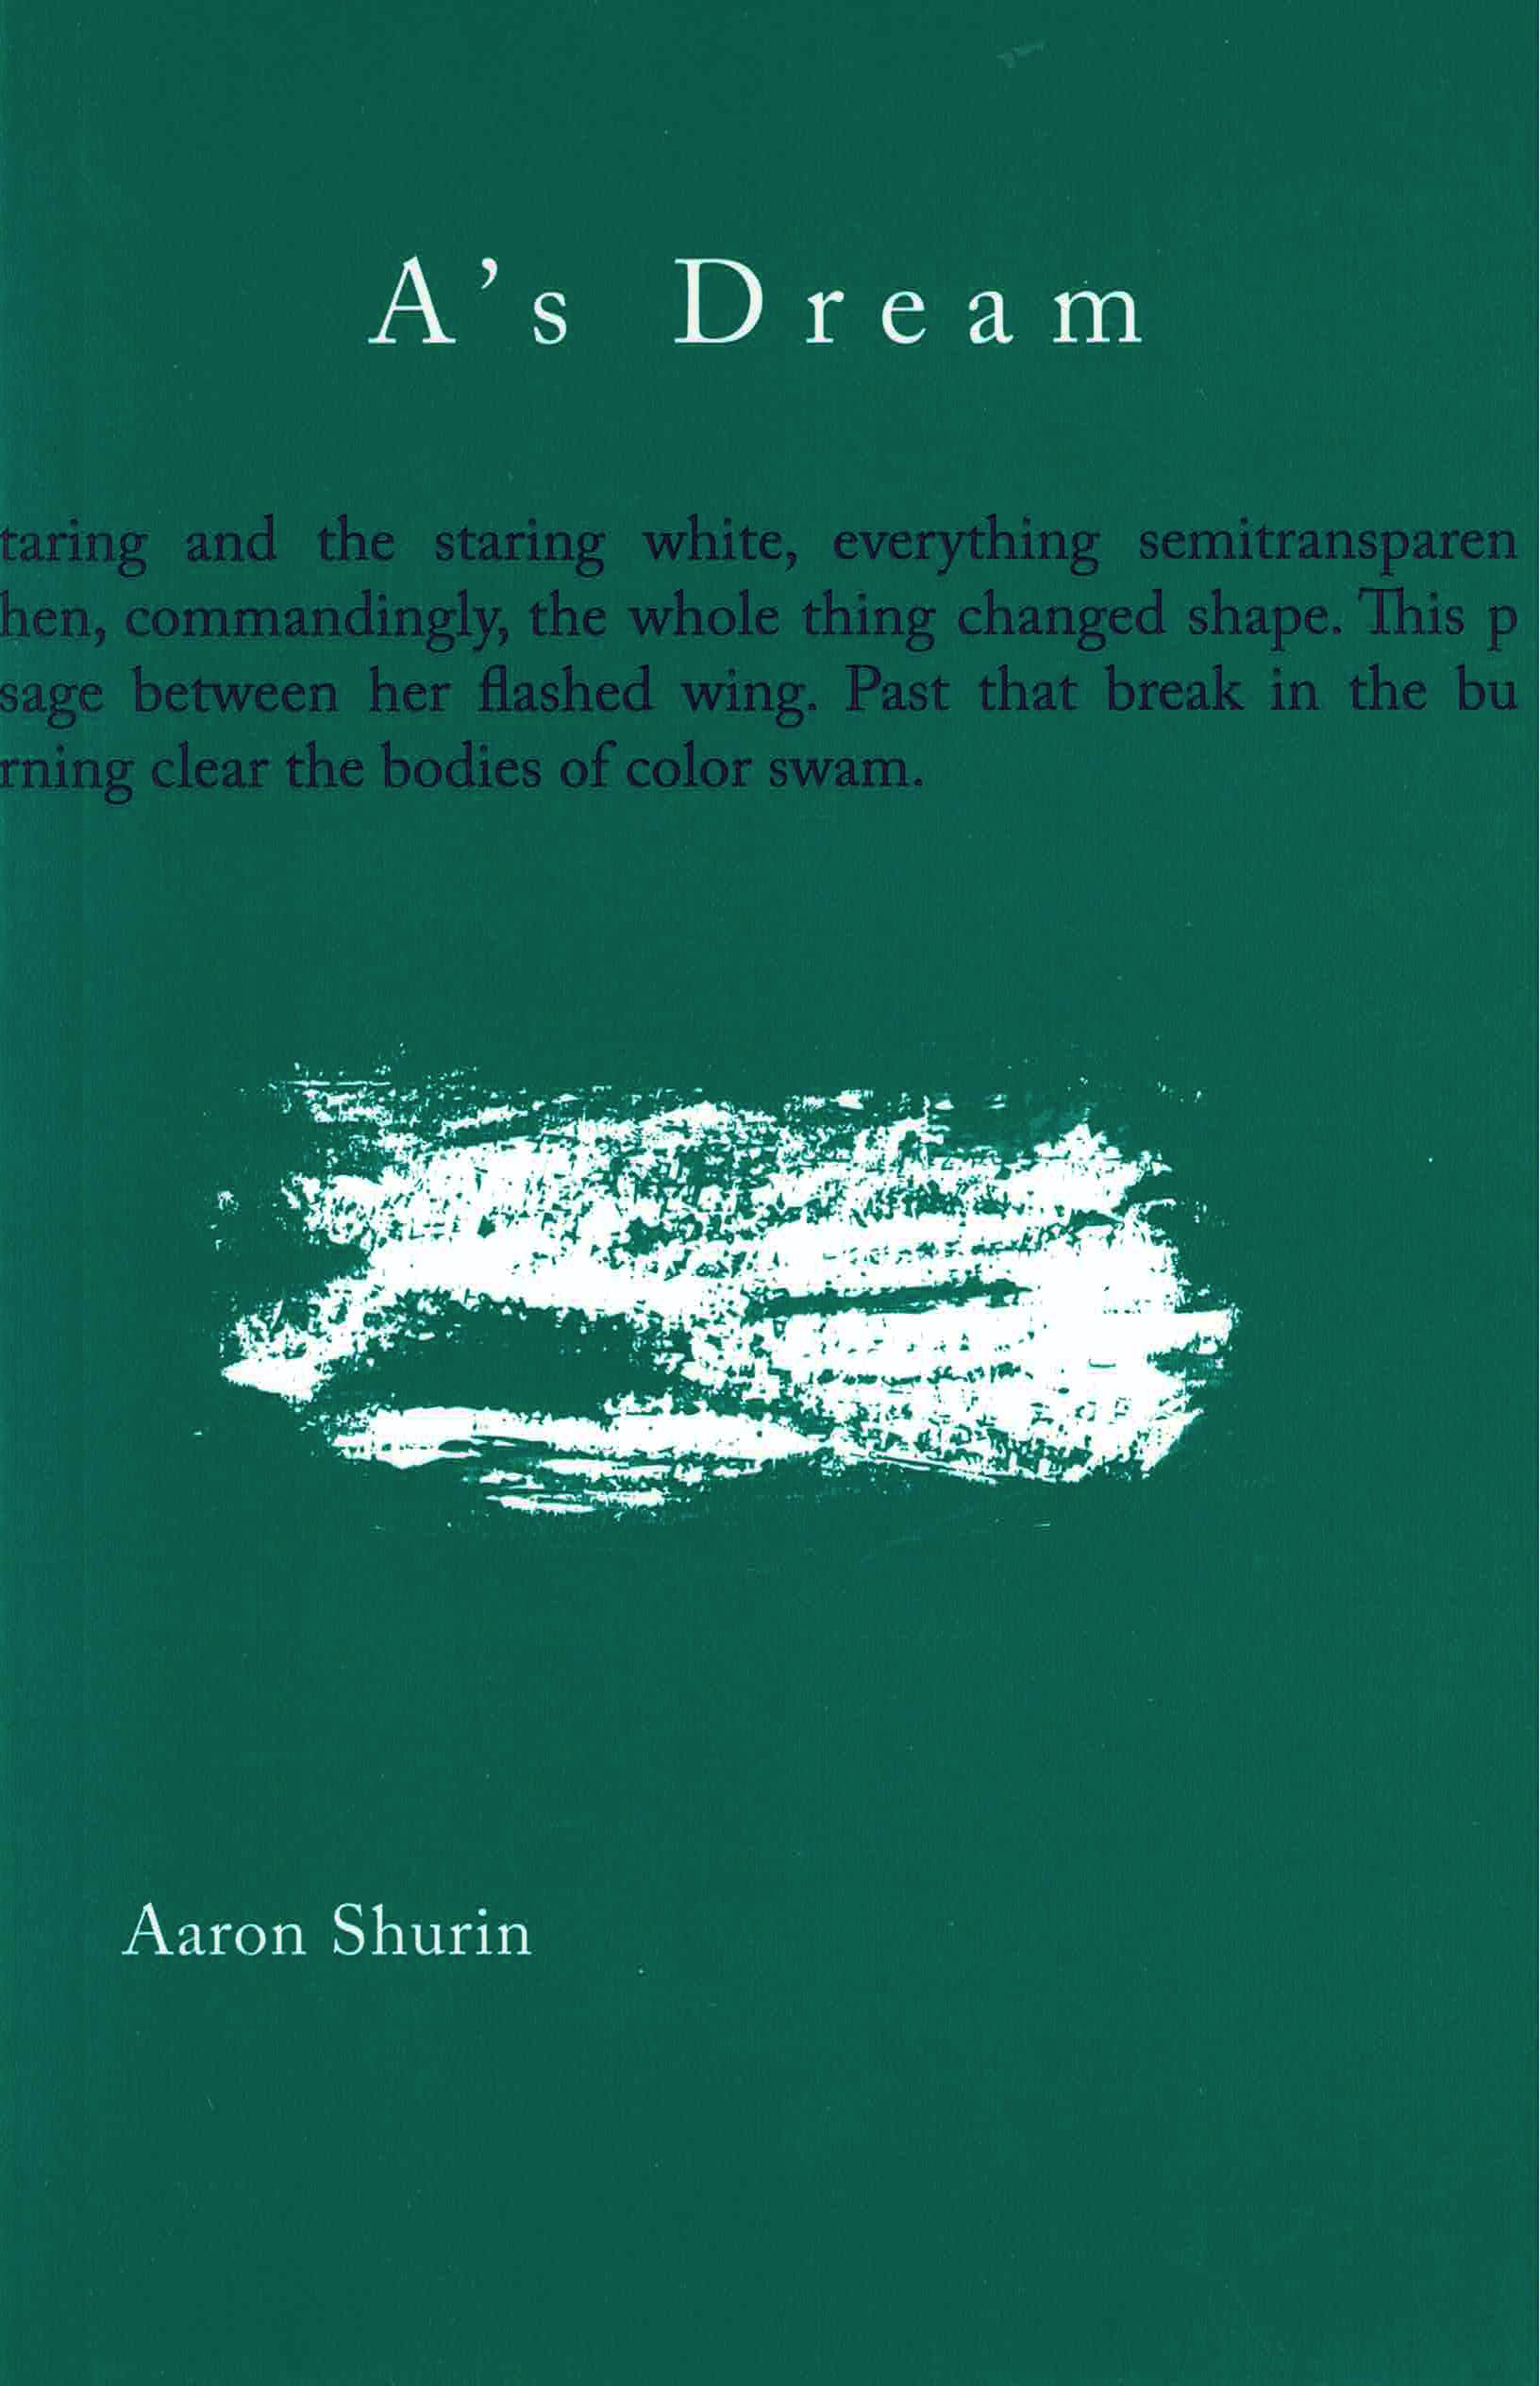 cover of A's Dream by Aaron Shurin; forest green background, large smudge of white near cener of page, title in white typed text centered at the top, excerpt of text cuts across in in blue typing under title and falls off edge of page